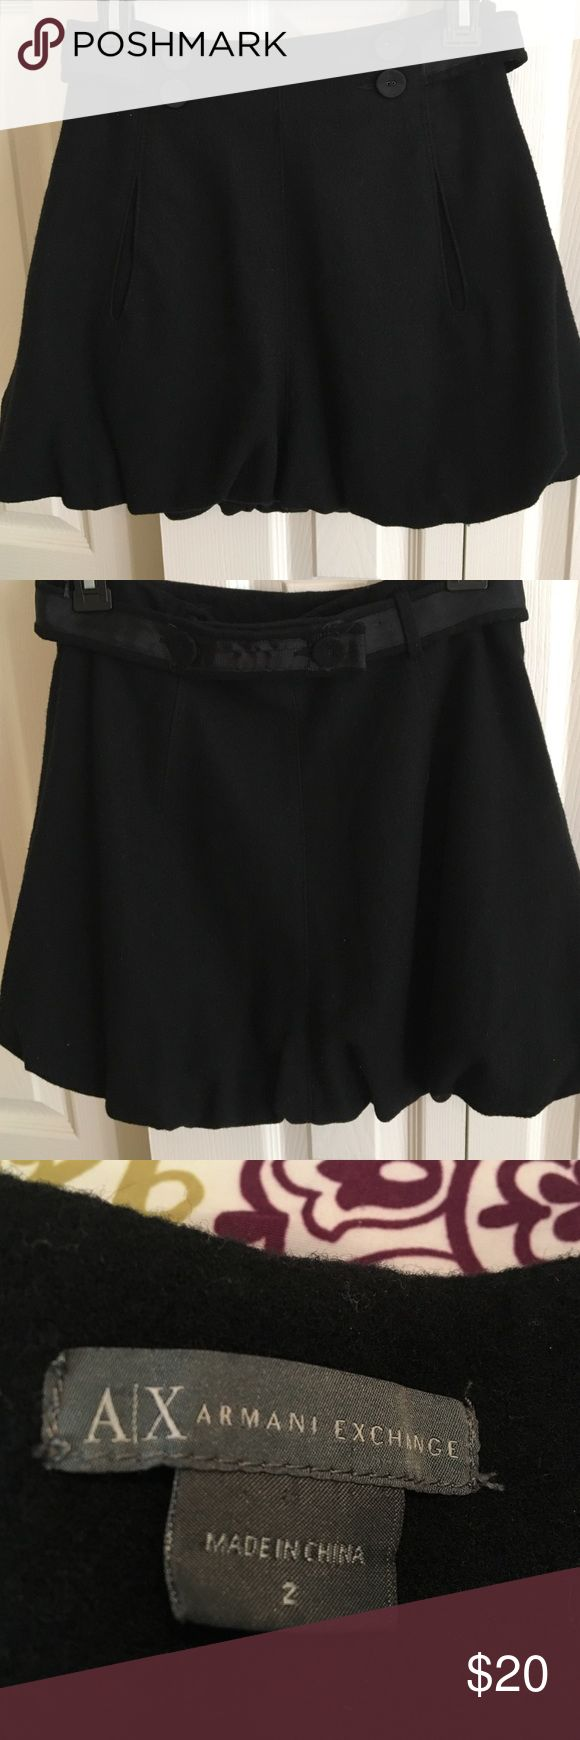 Size 2 Armani Exchange bubble skirt. Size 2 Armani Exchange black bubble skirt.  50% wool. 30% polyester, and 20% viscose.  Lining 100% polyester. Zips up side and buttons to back. A/X Armani Exchange Skirts